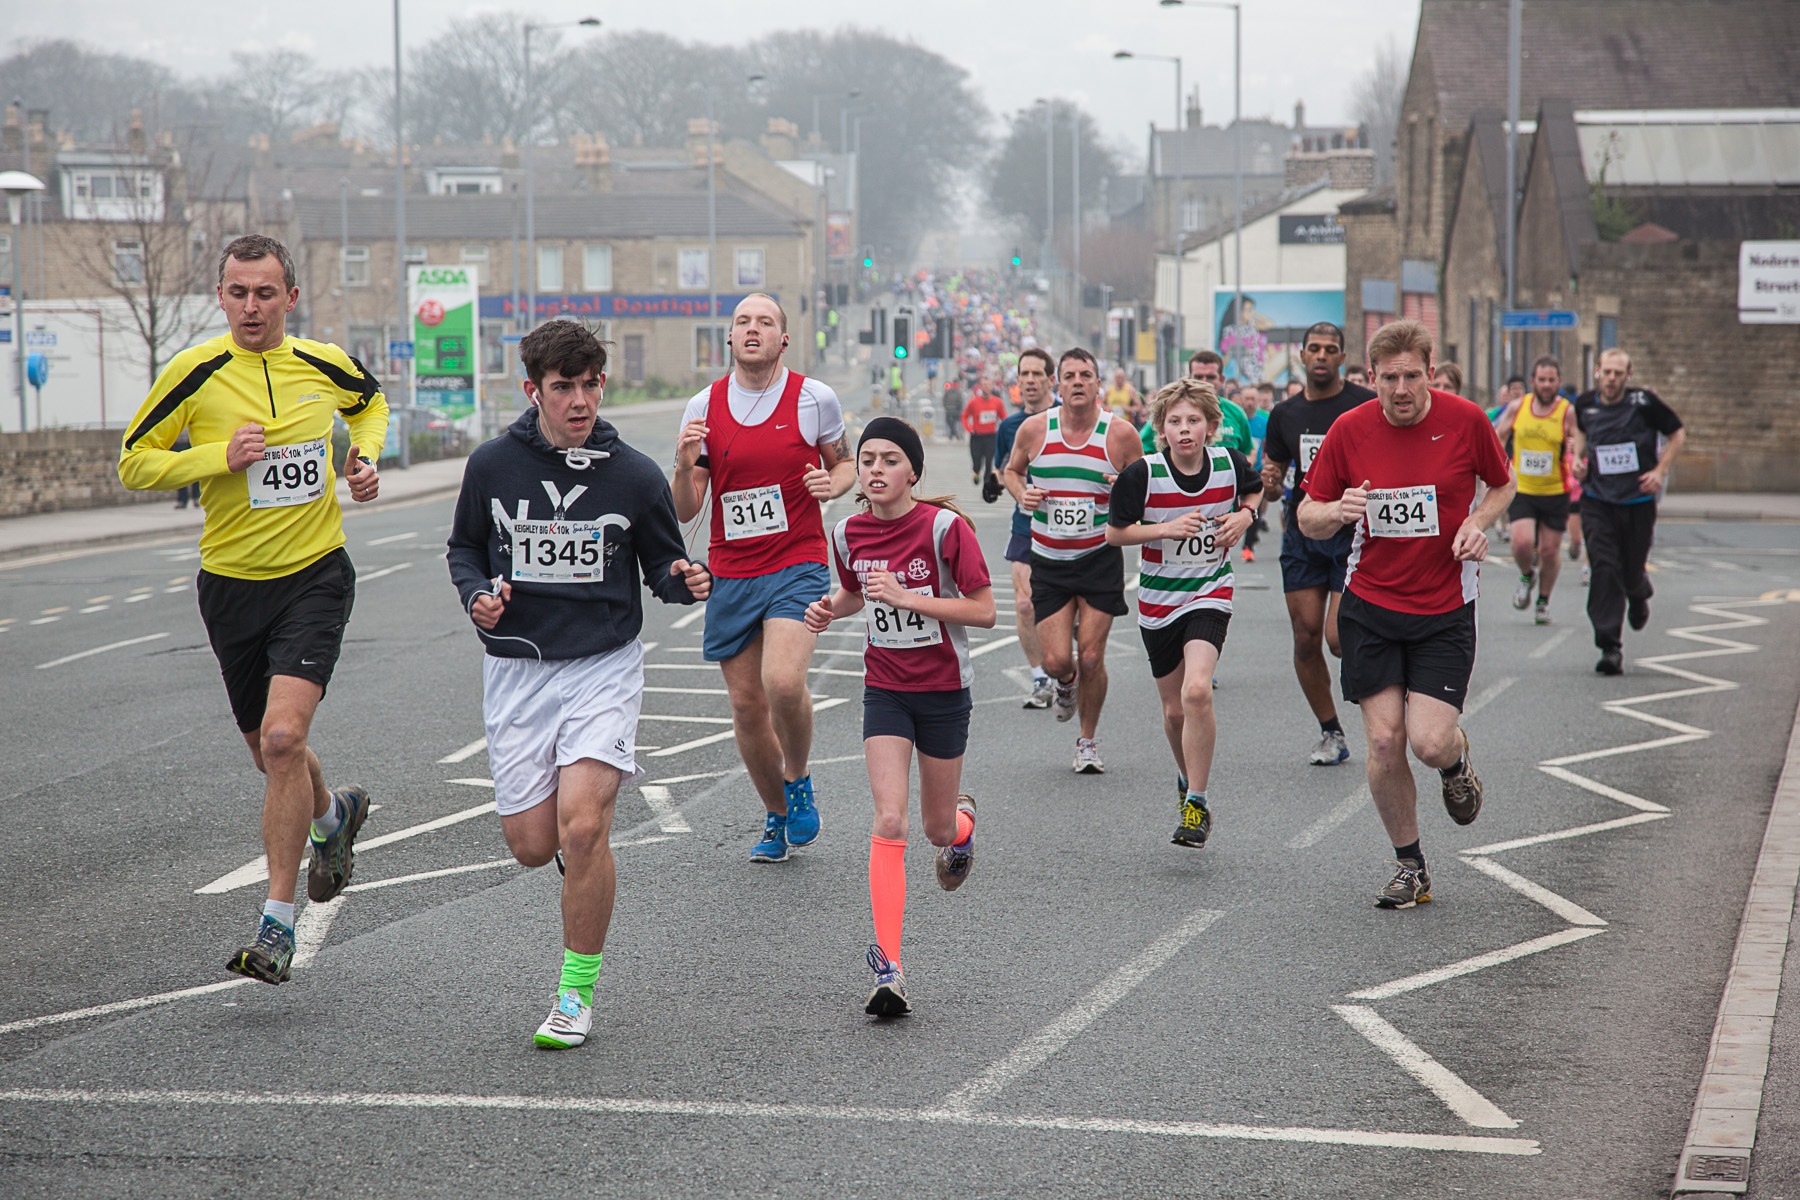 Runners make their way along Bradford Road